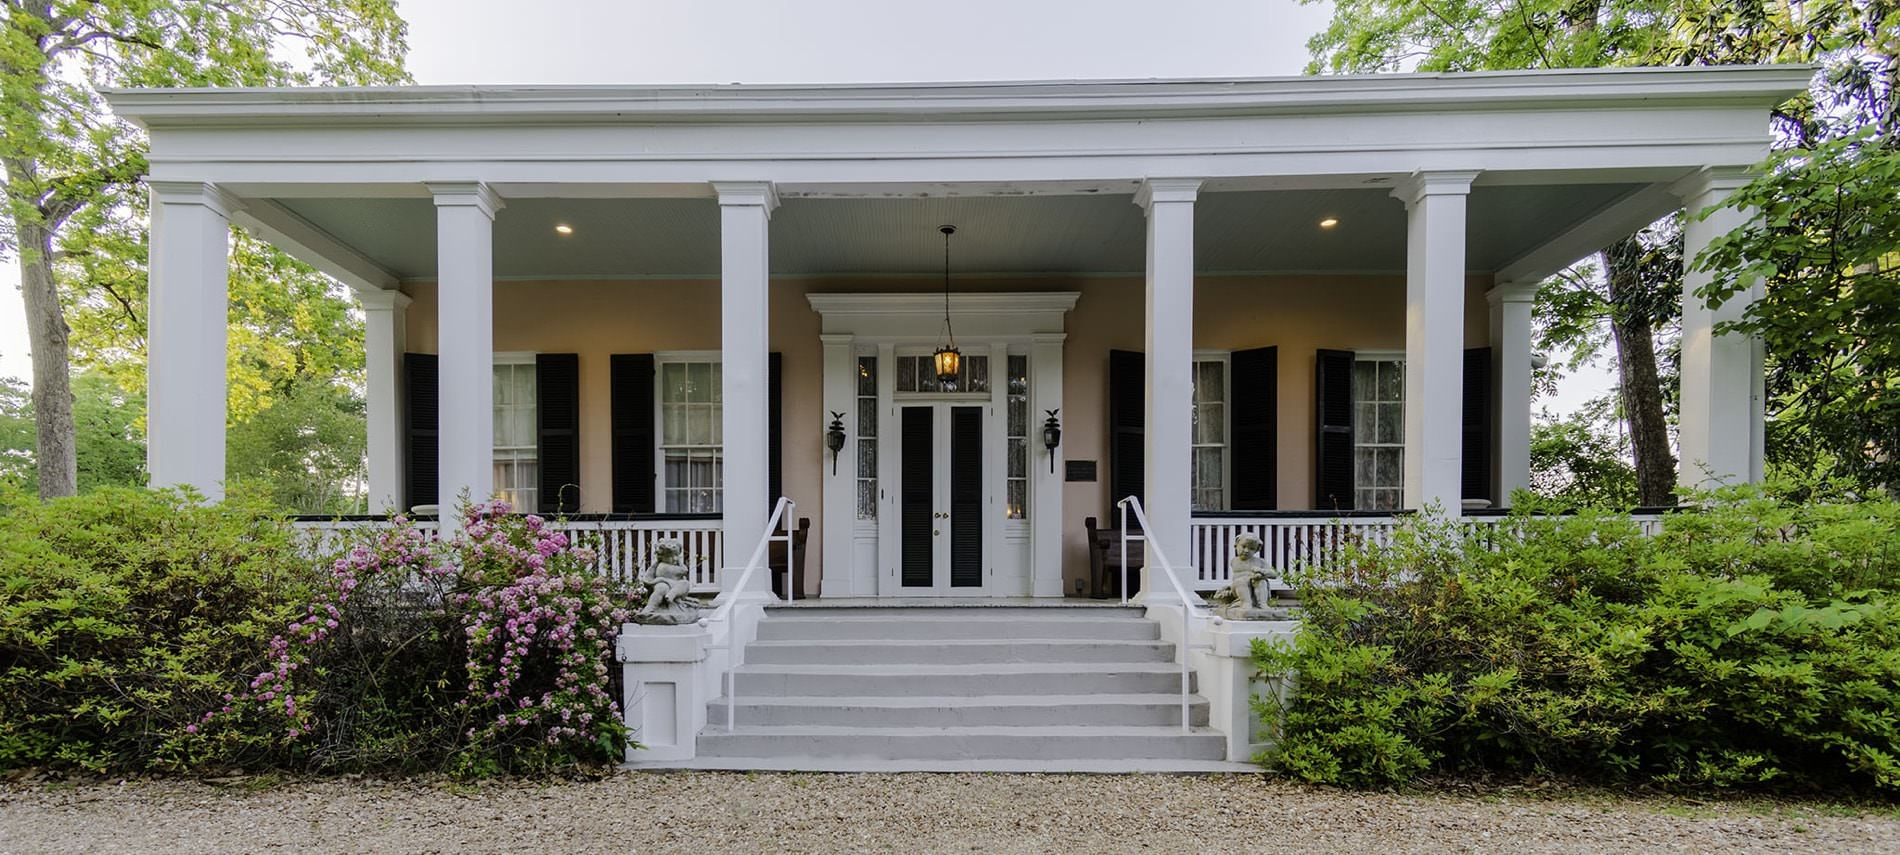 Front view of b&b with light tan siding, white and black windows and front door with white pillars and bushes lining full porch